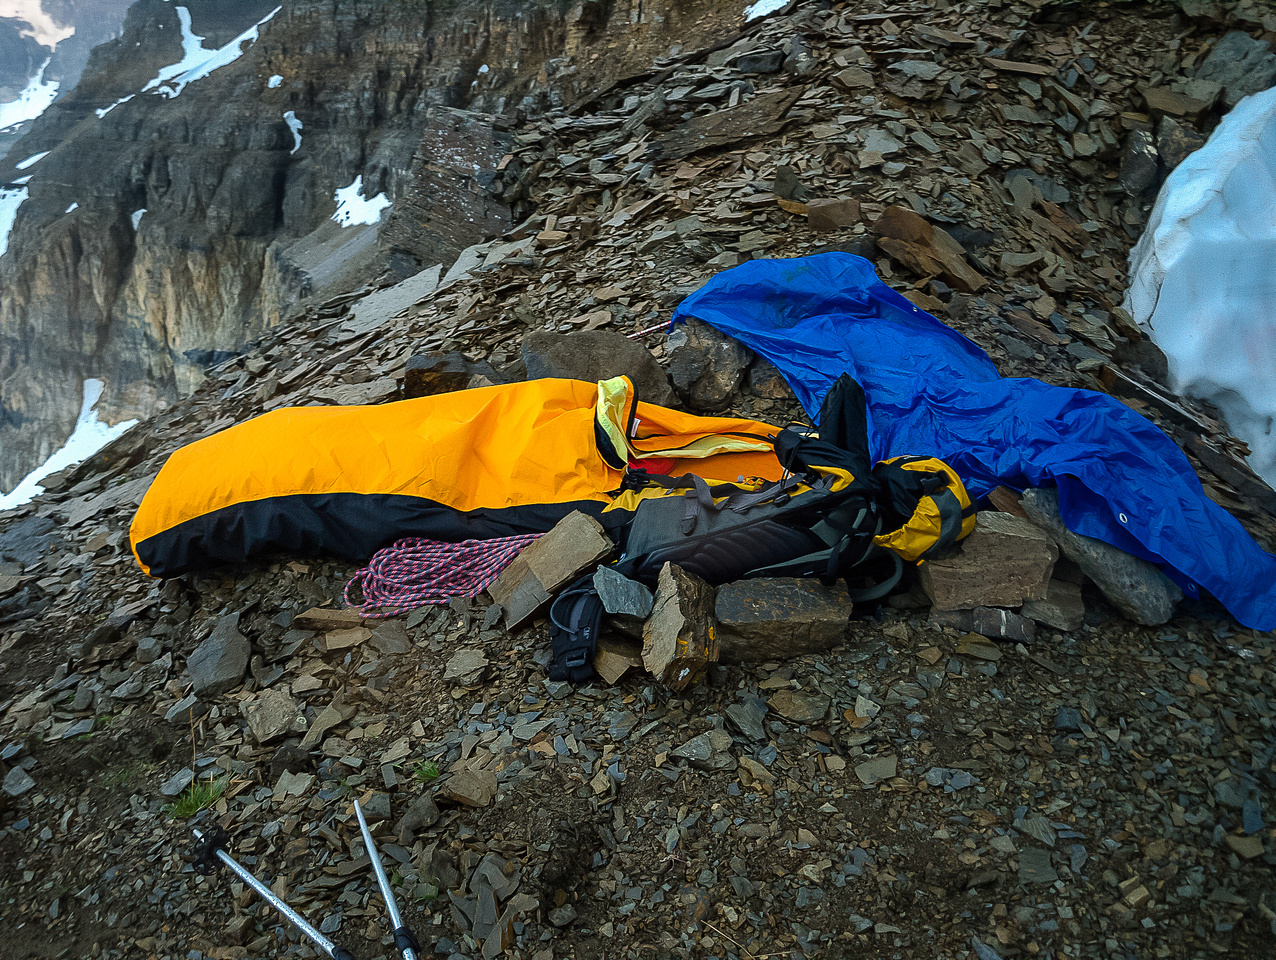 My bivy - note the rocks to keep me from going over a cliff!